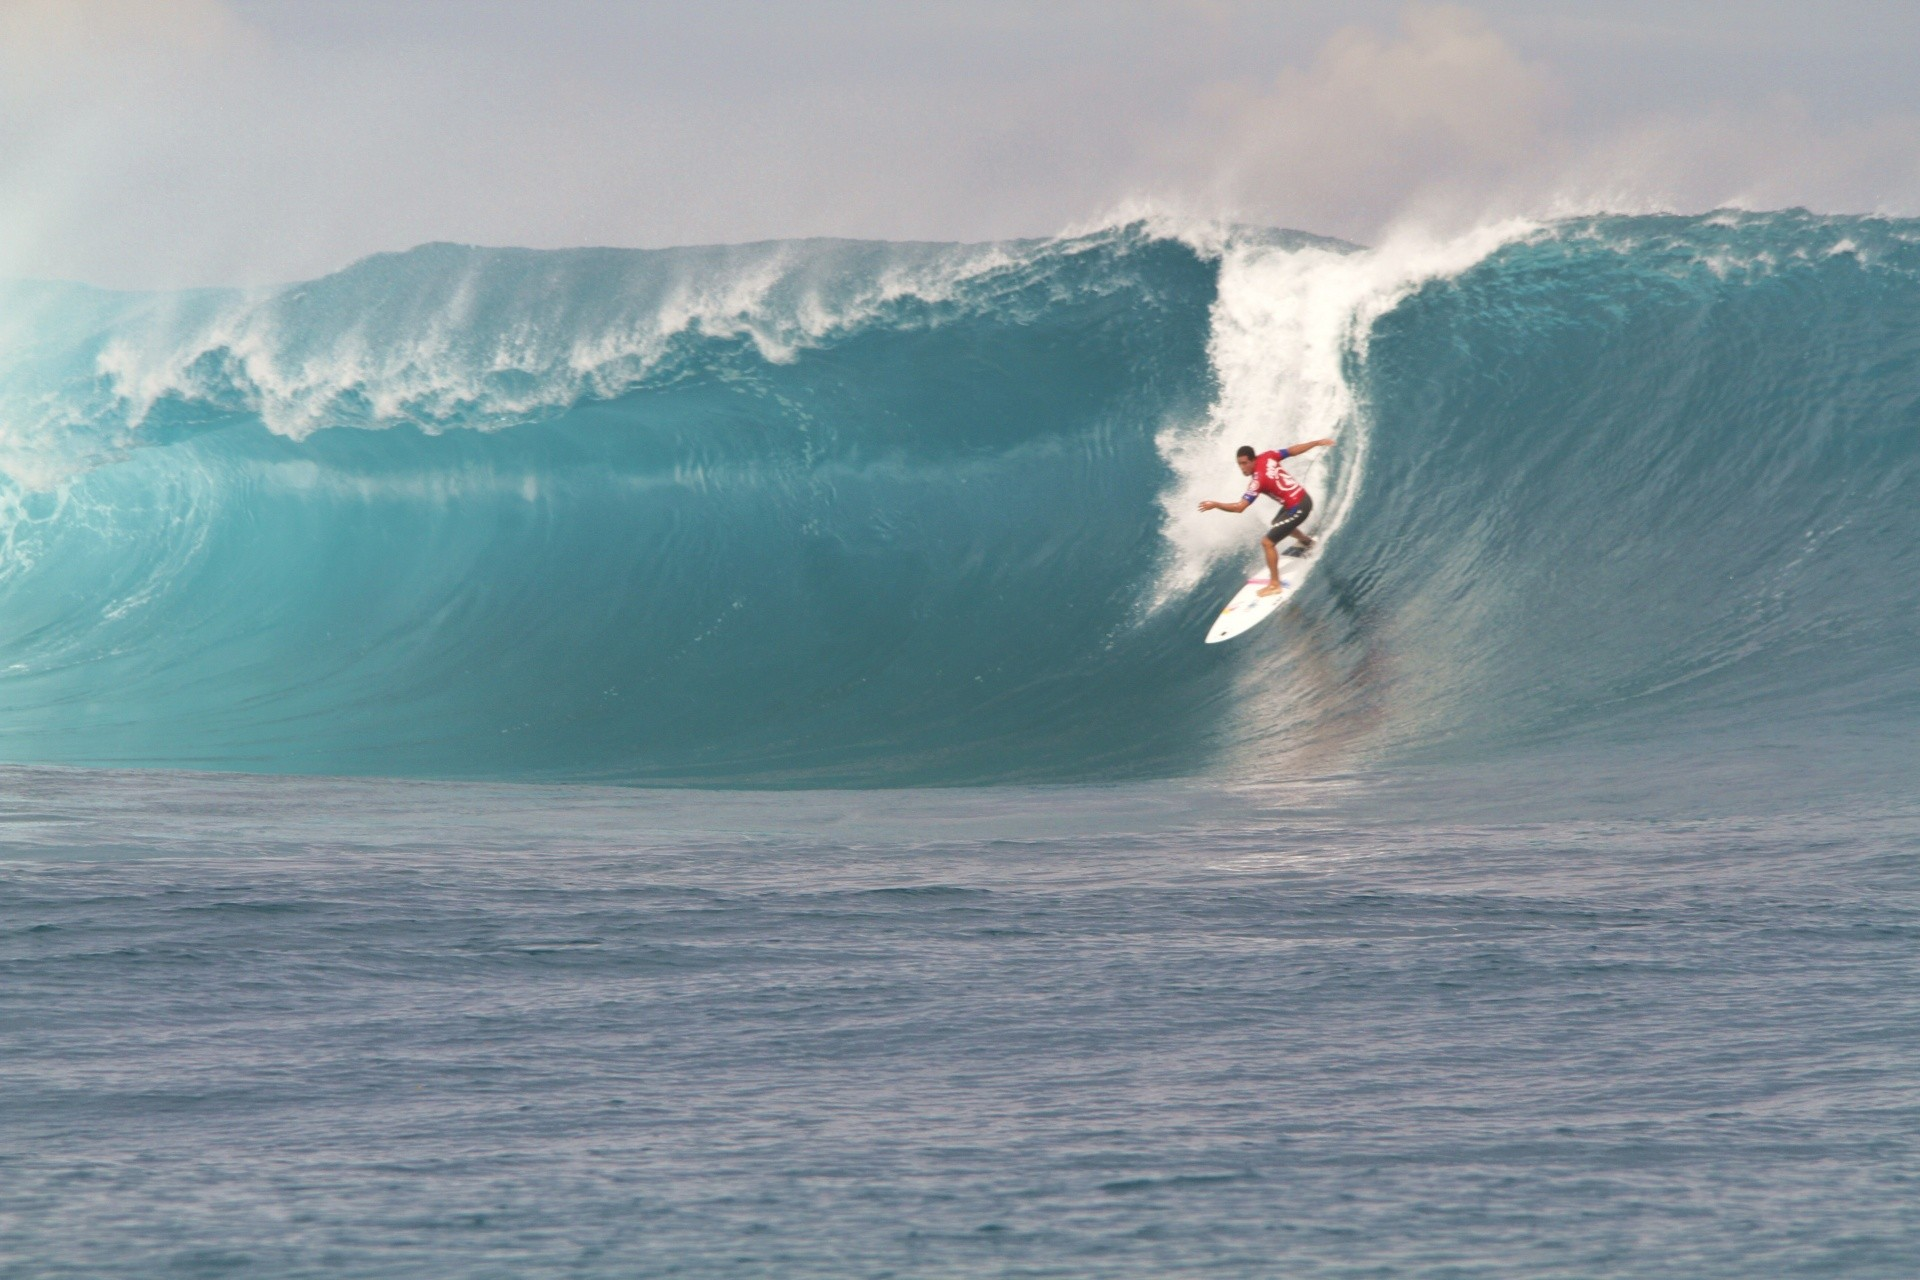 Josh Peterson McFarlane's photo of Tavarua - Cloudbreak